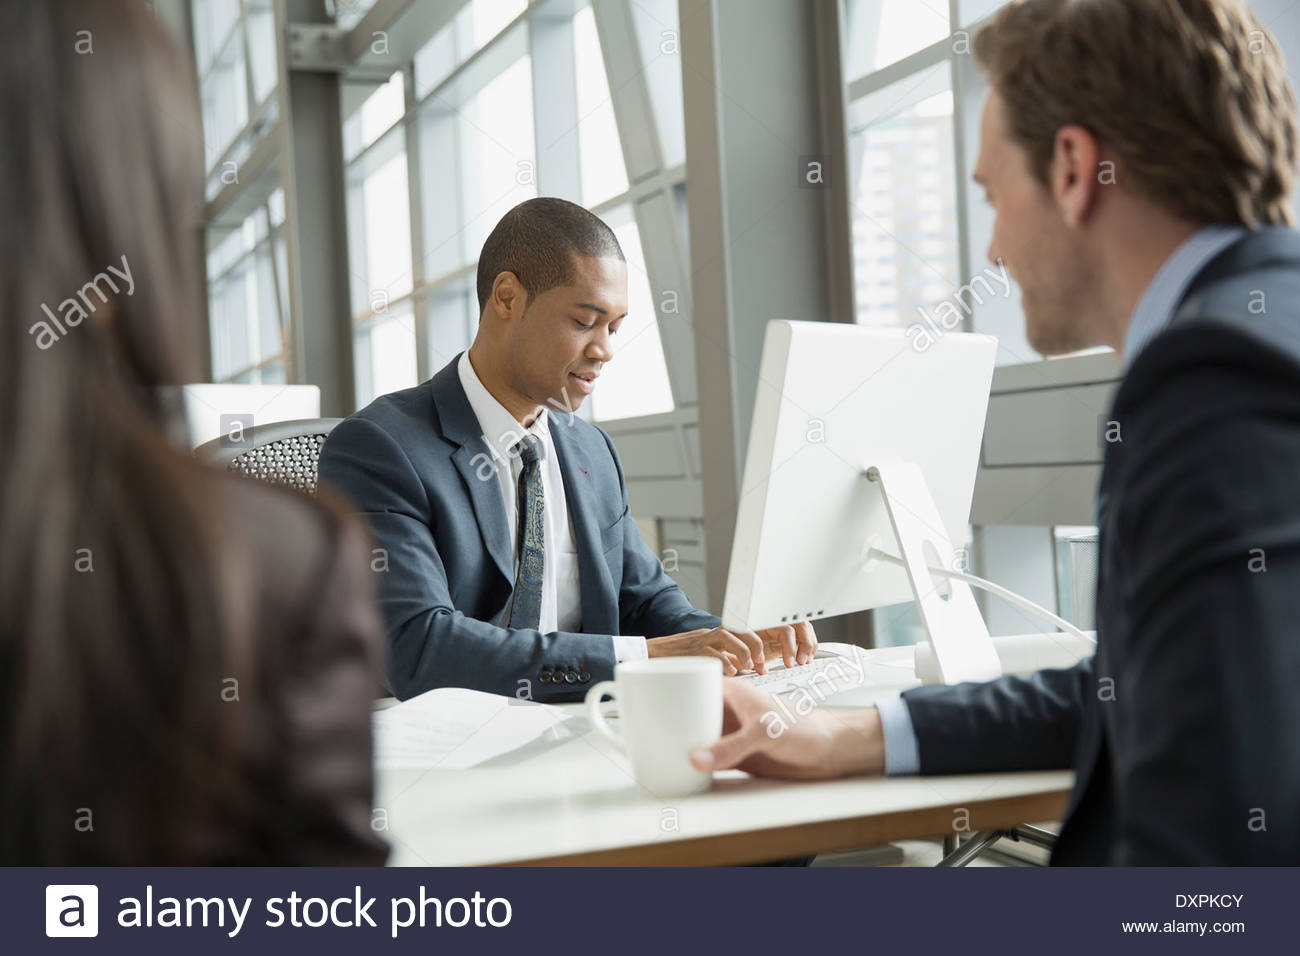 Business people meeting at computer in office - Stock Image